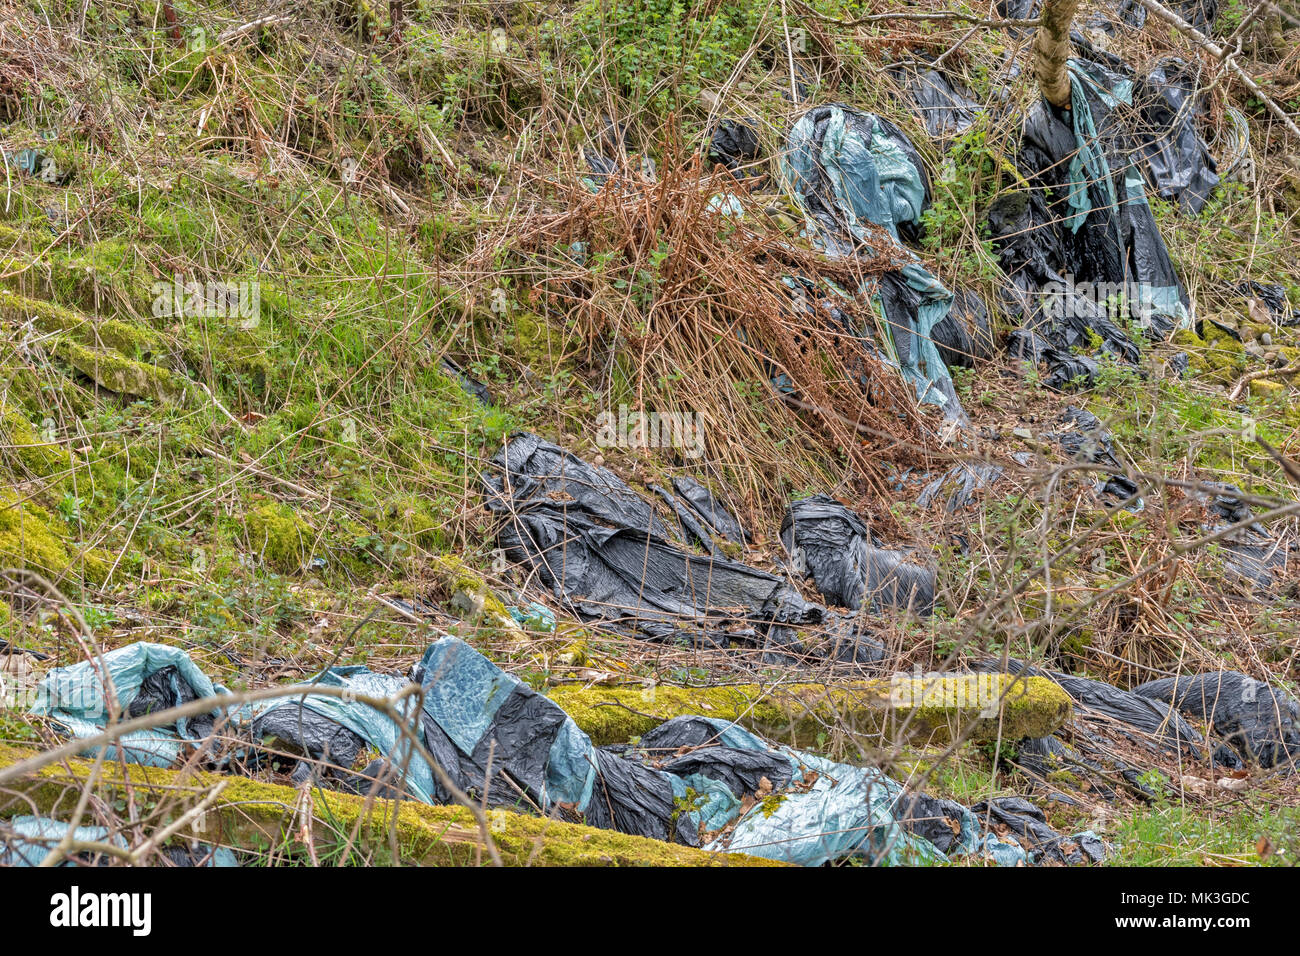 DISCARDED PLASTIC WRAPPERS FROM FARM BALES OF HAY OR SILEAGE LYING IN A DITCH - Stock Image